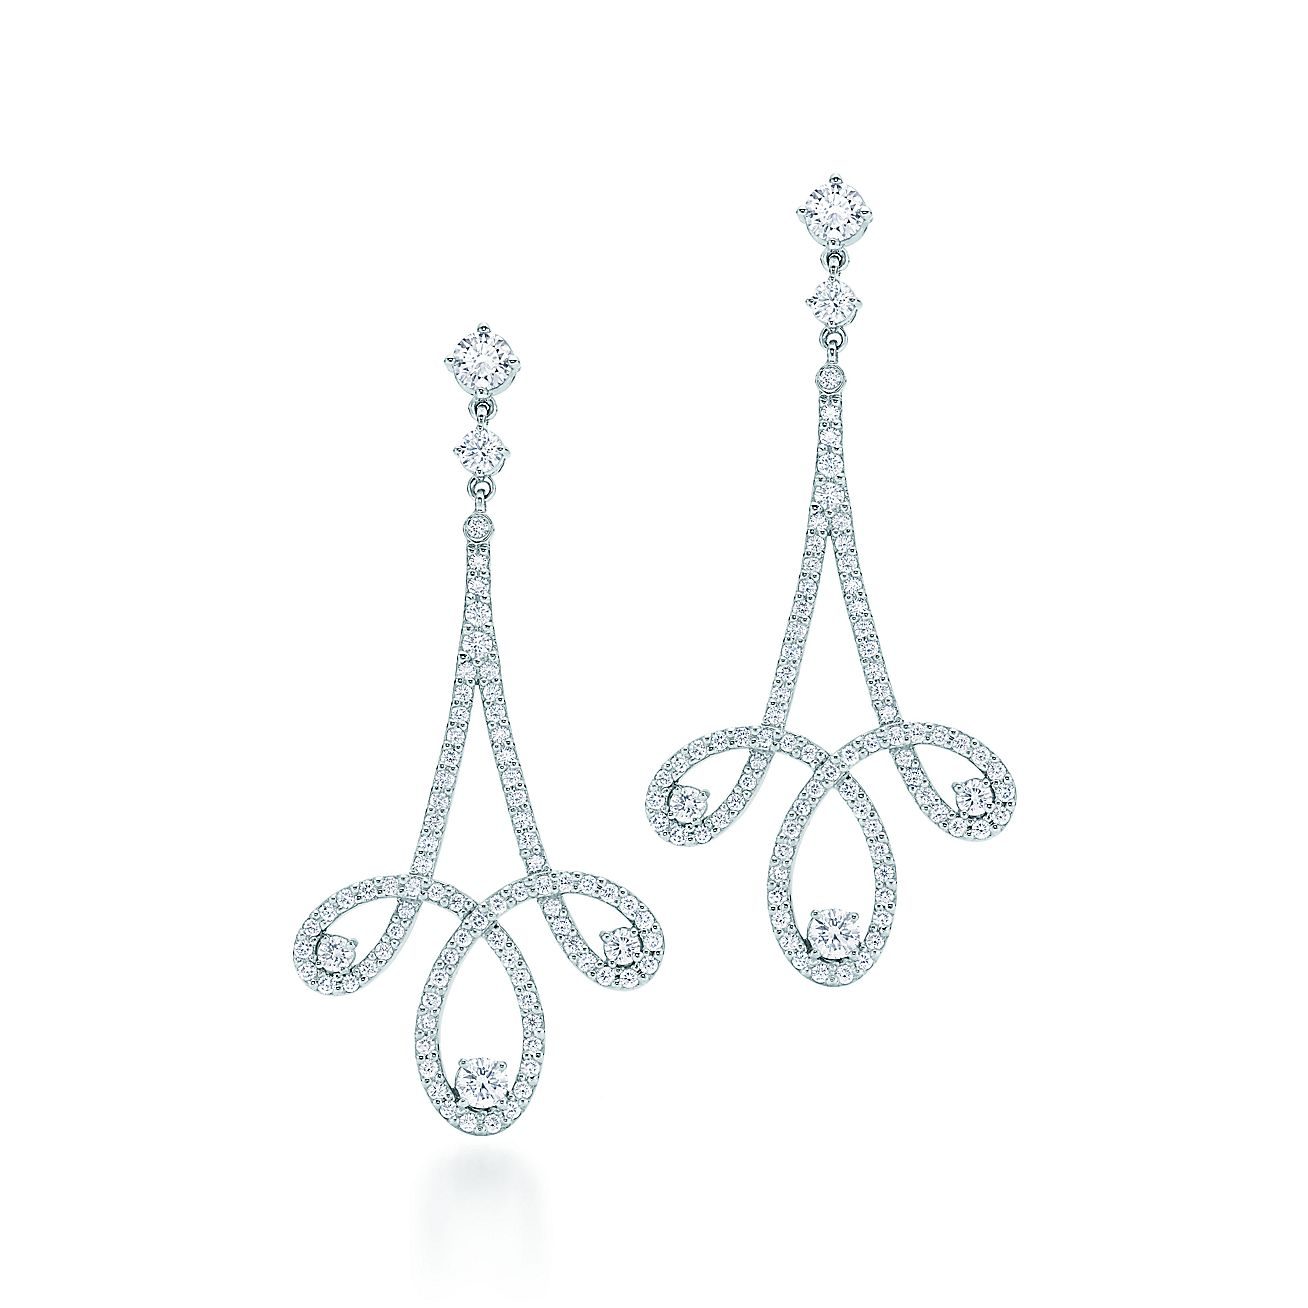 Tiffany Enchant® scroll earrings in platinum with diamonds